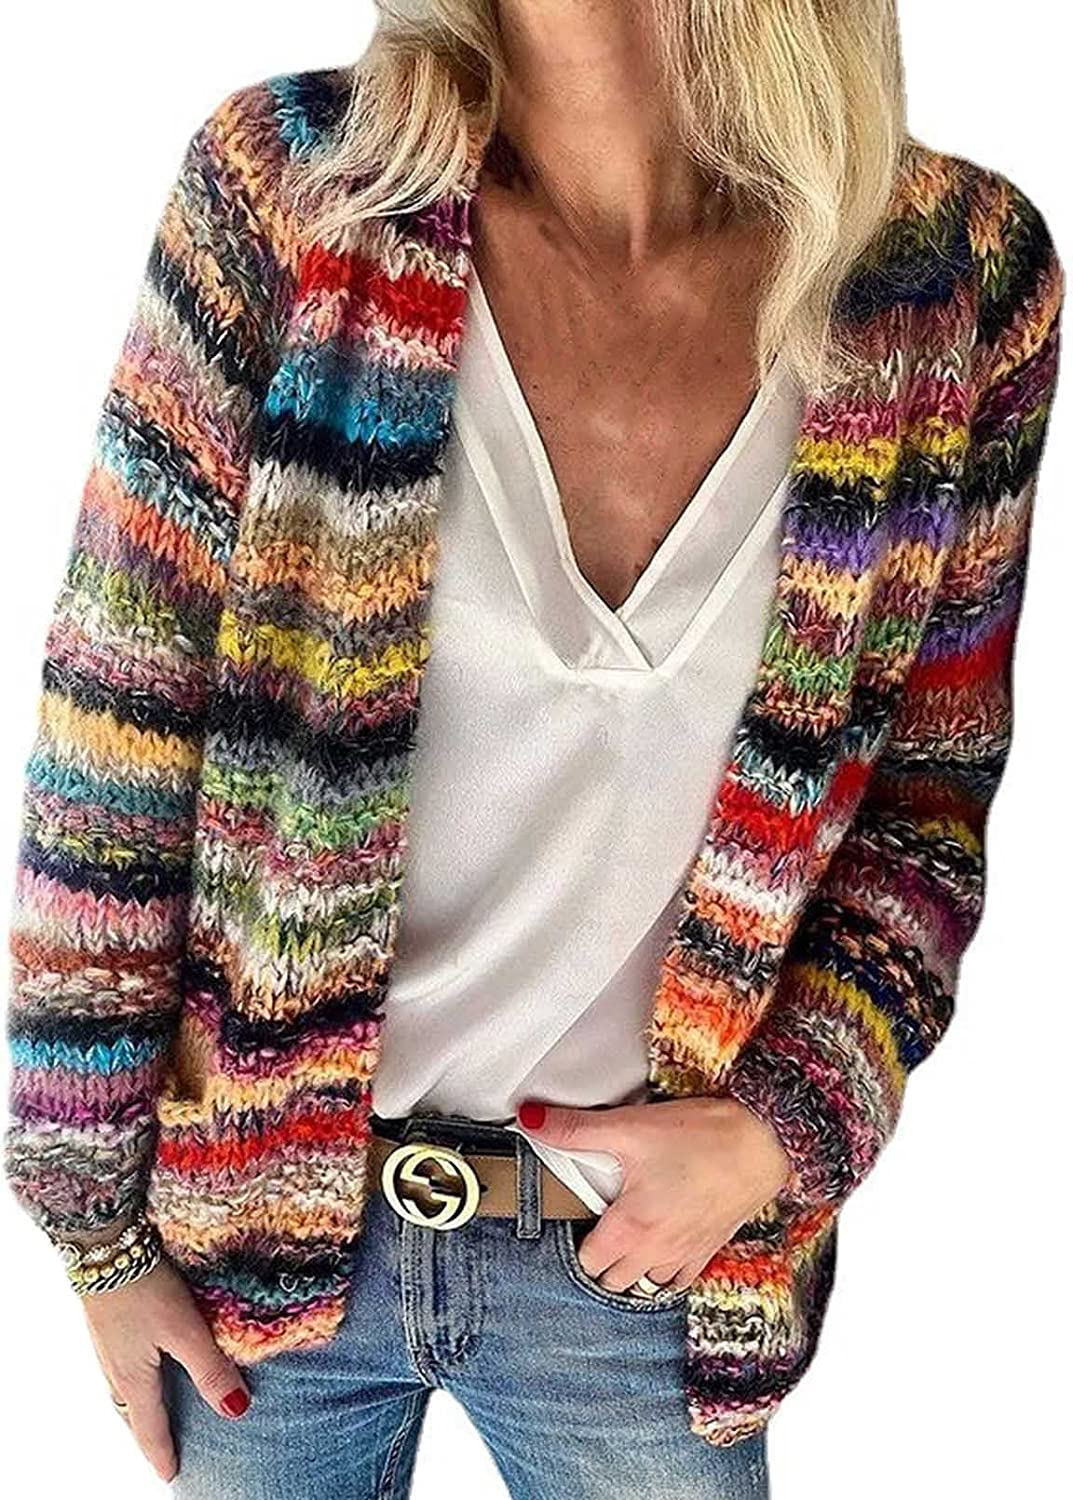 Women's Rainbow Striped Cardigan Sweaters Open Front Chunky Long Sleeve Knitwear Sweater Coat with Pockets